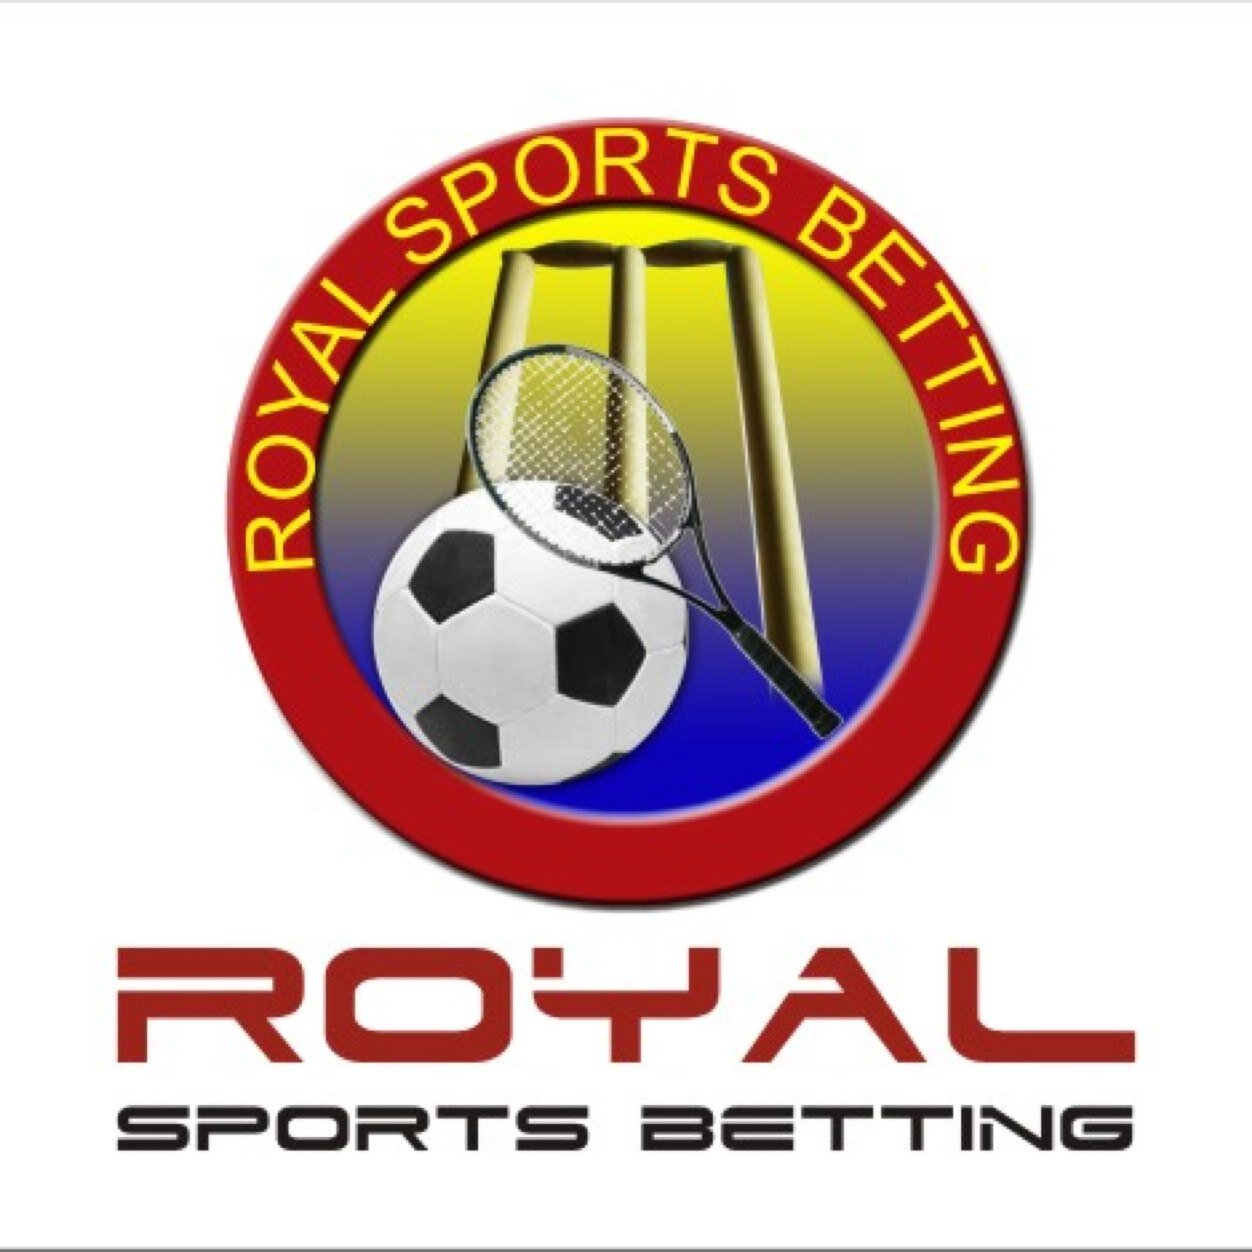 Royal sports betting each way betting explained horse racing